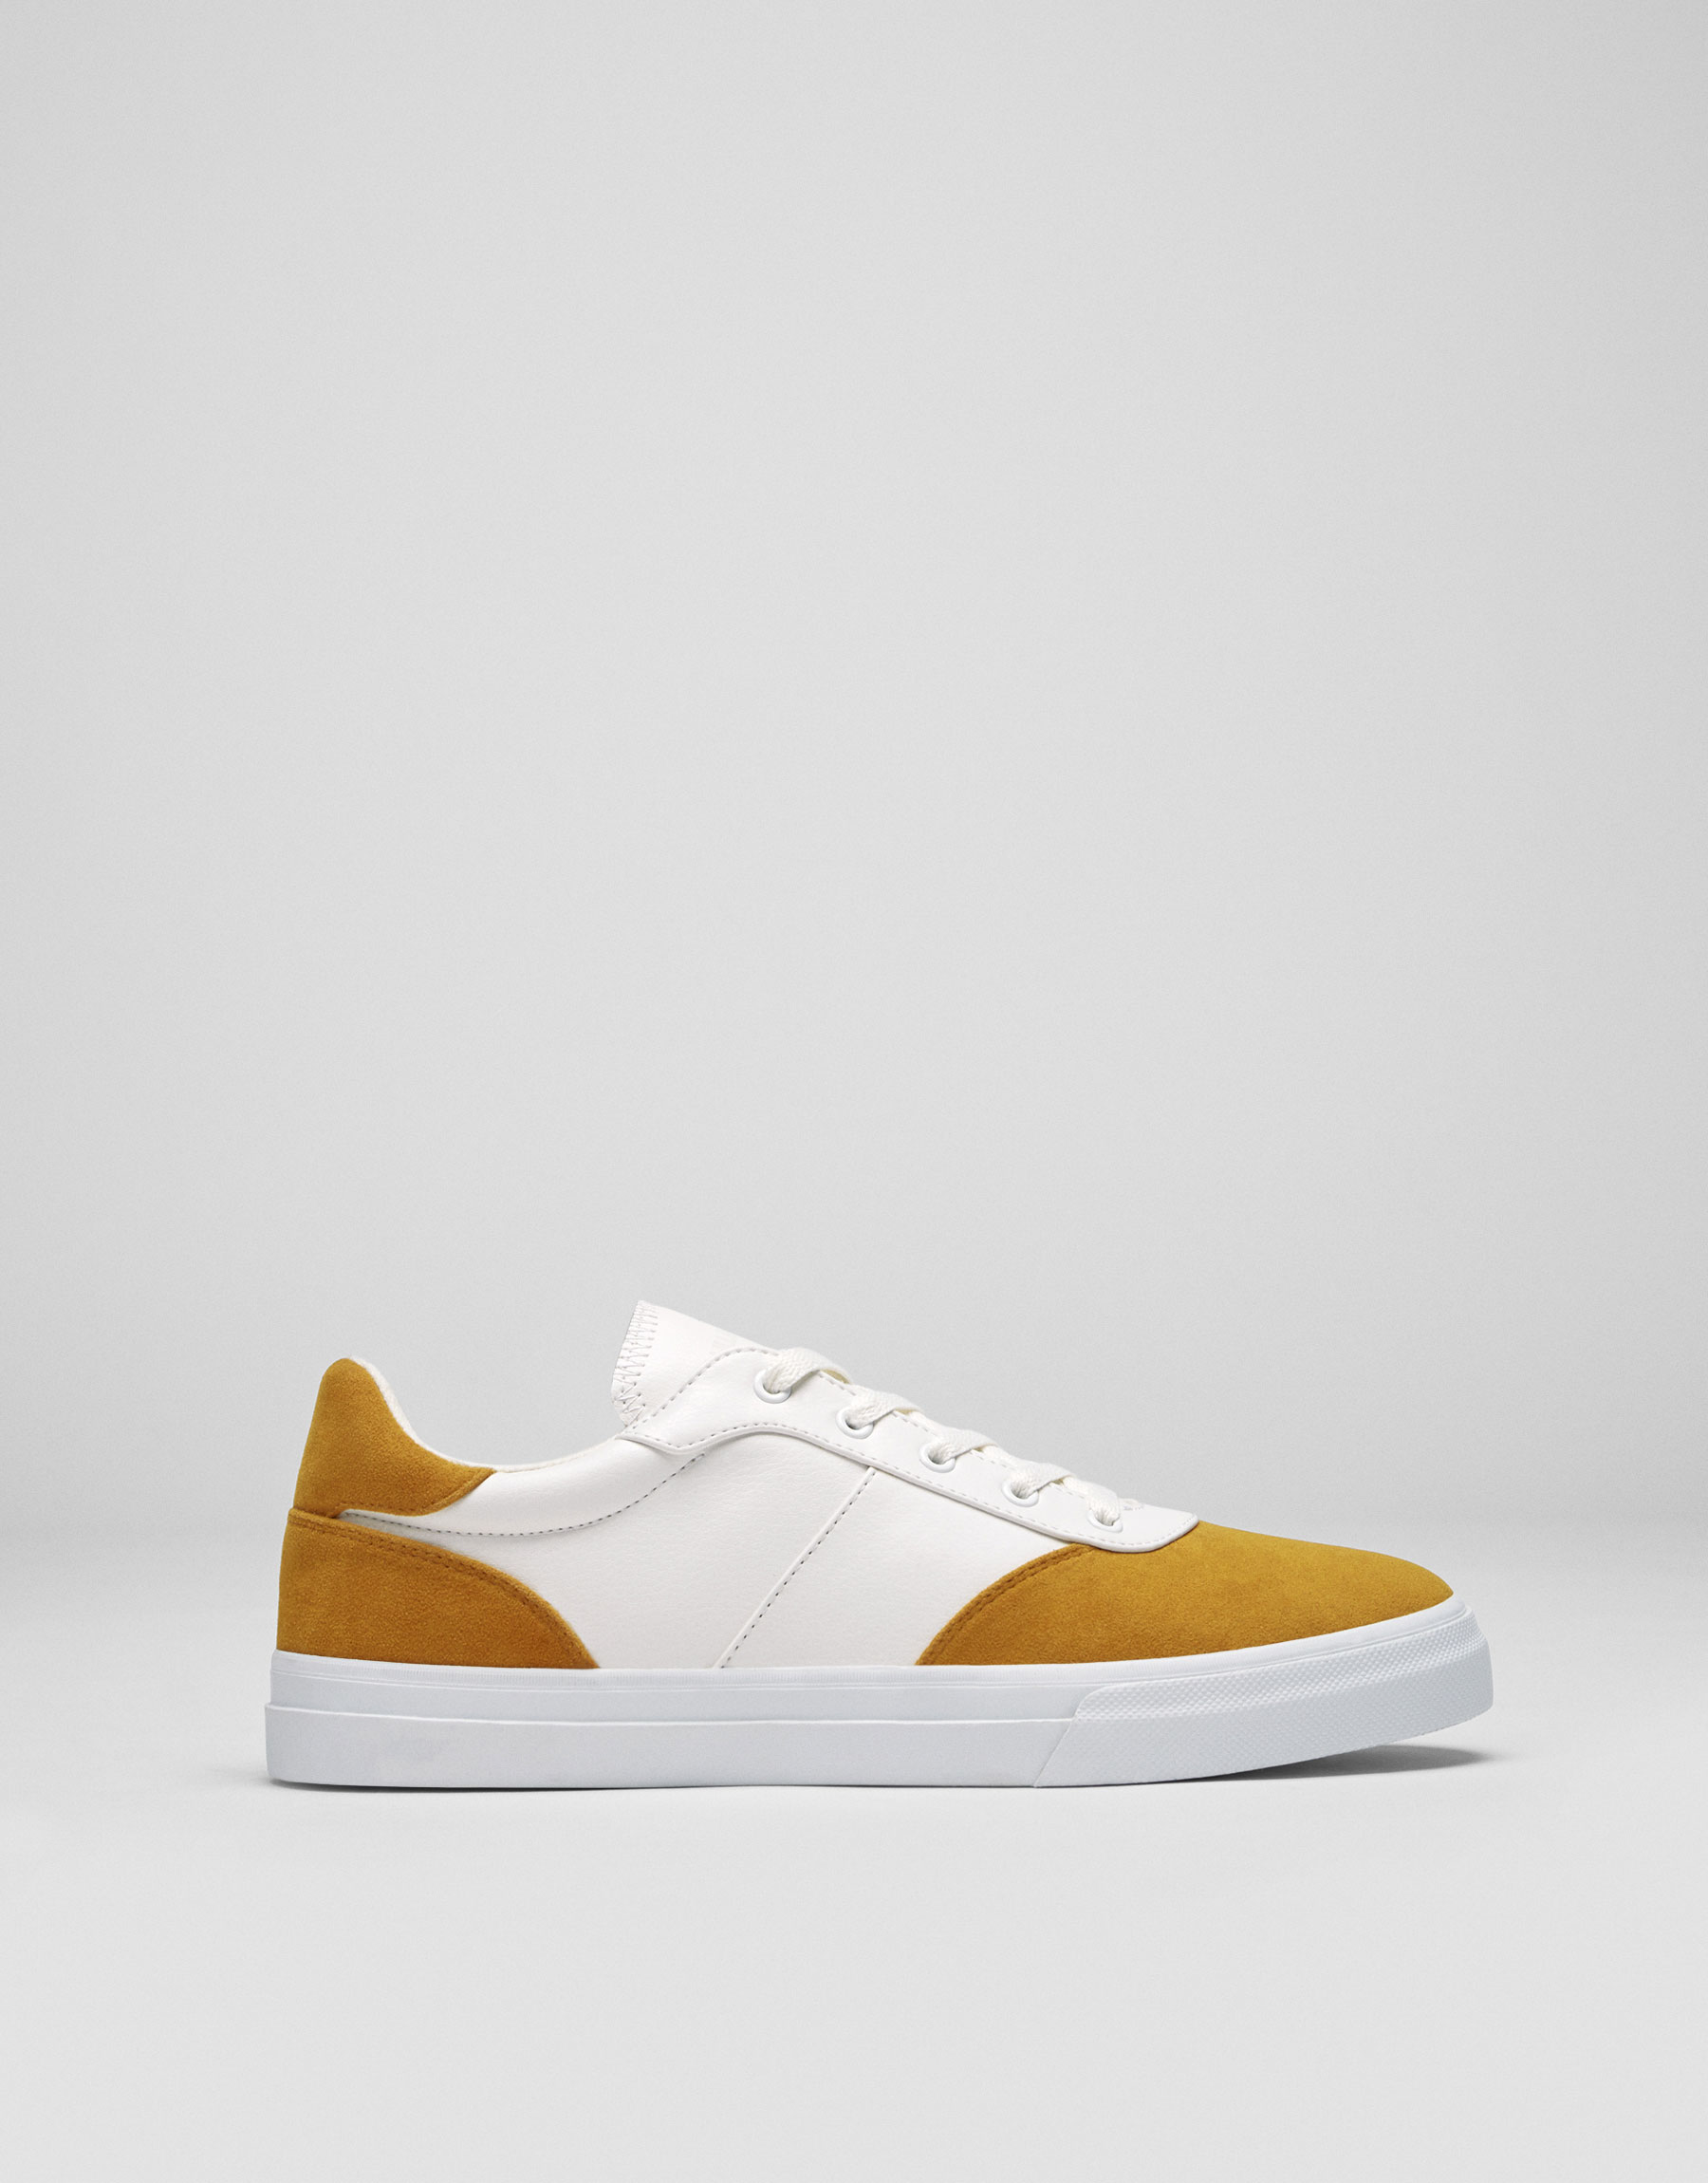 Two-tone yellow plimsolls